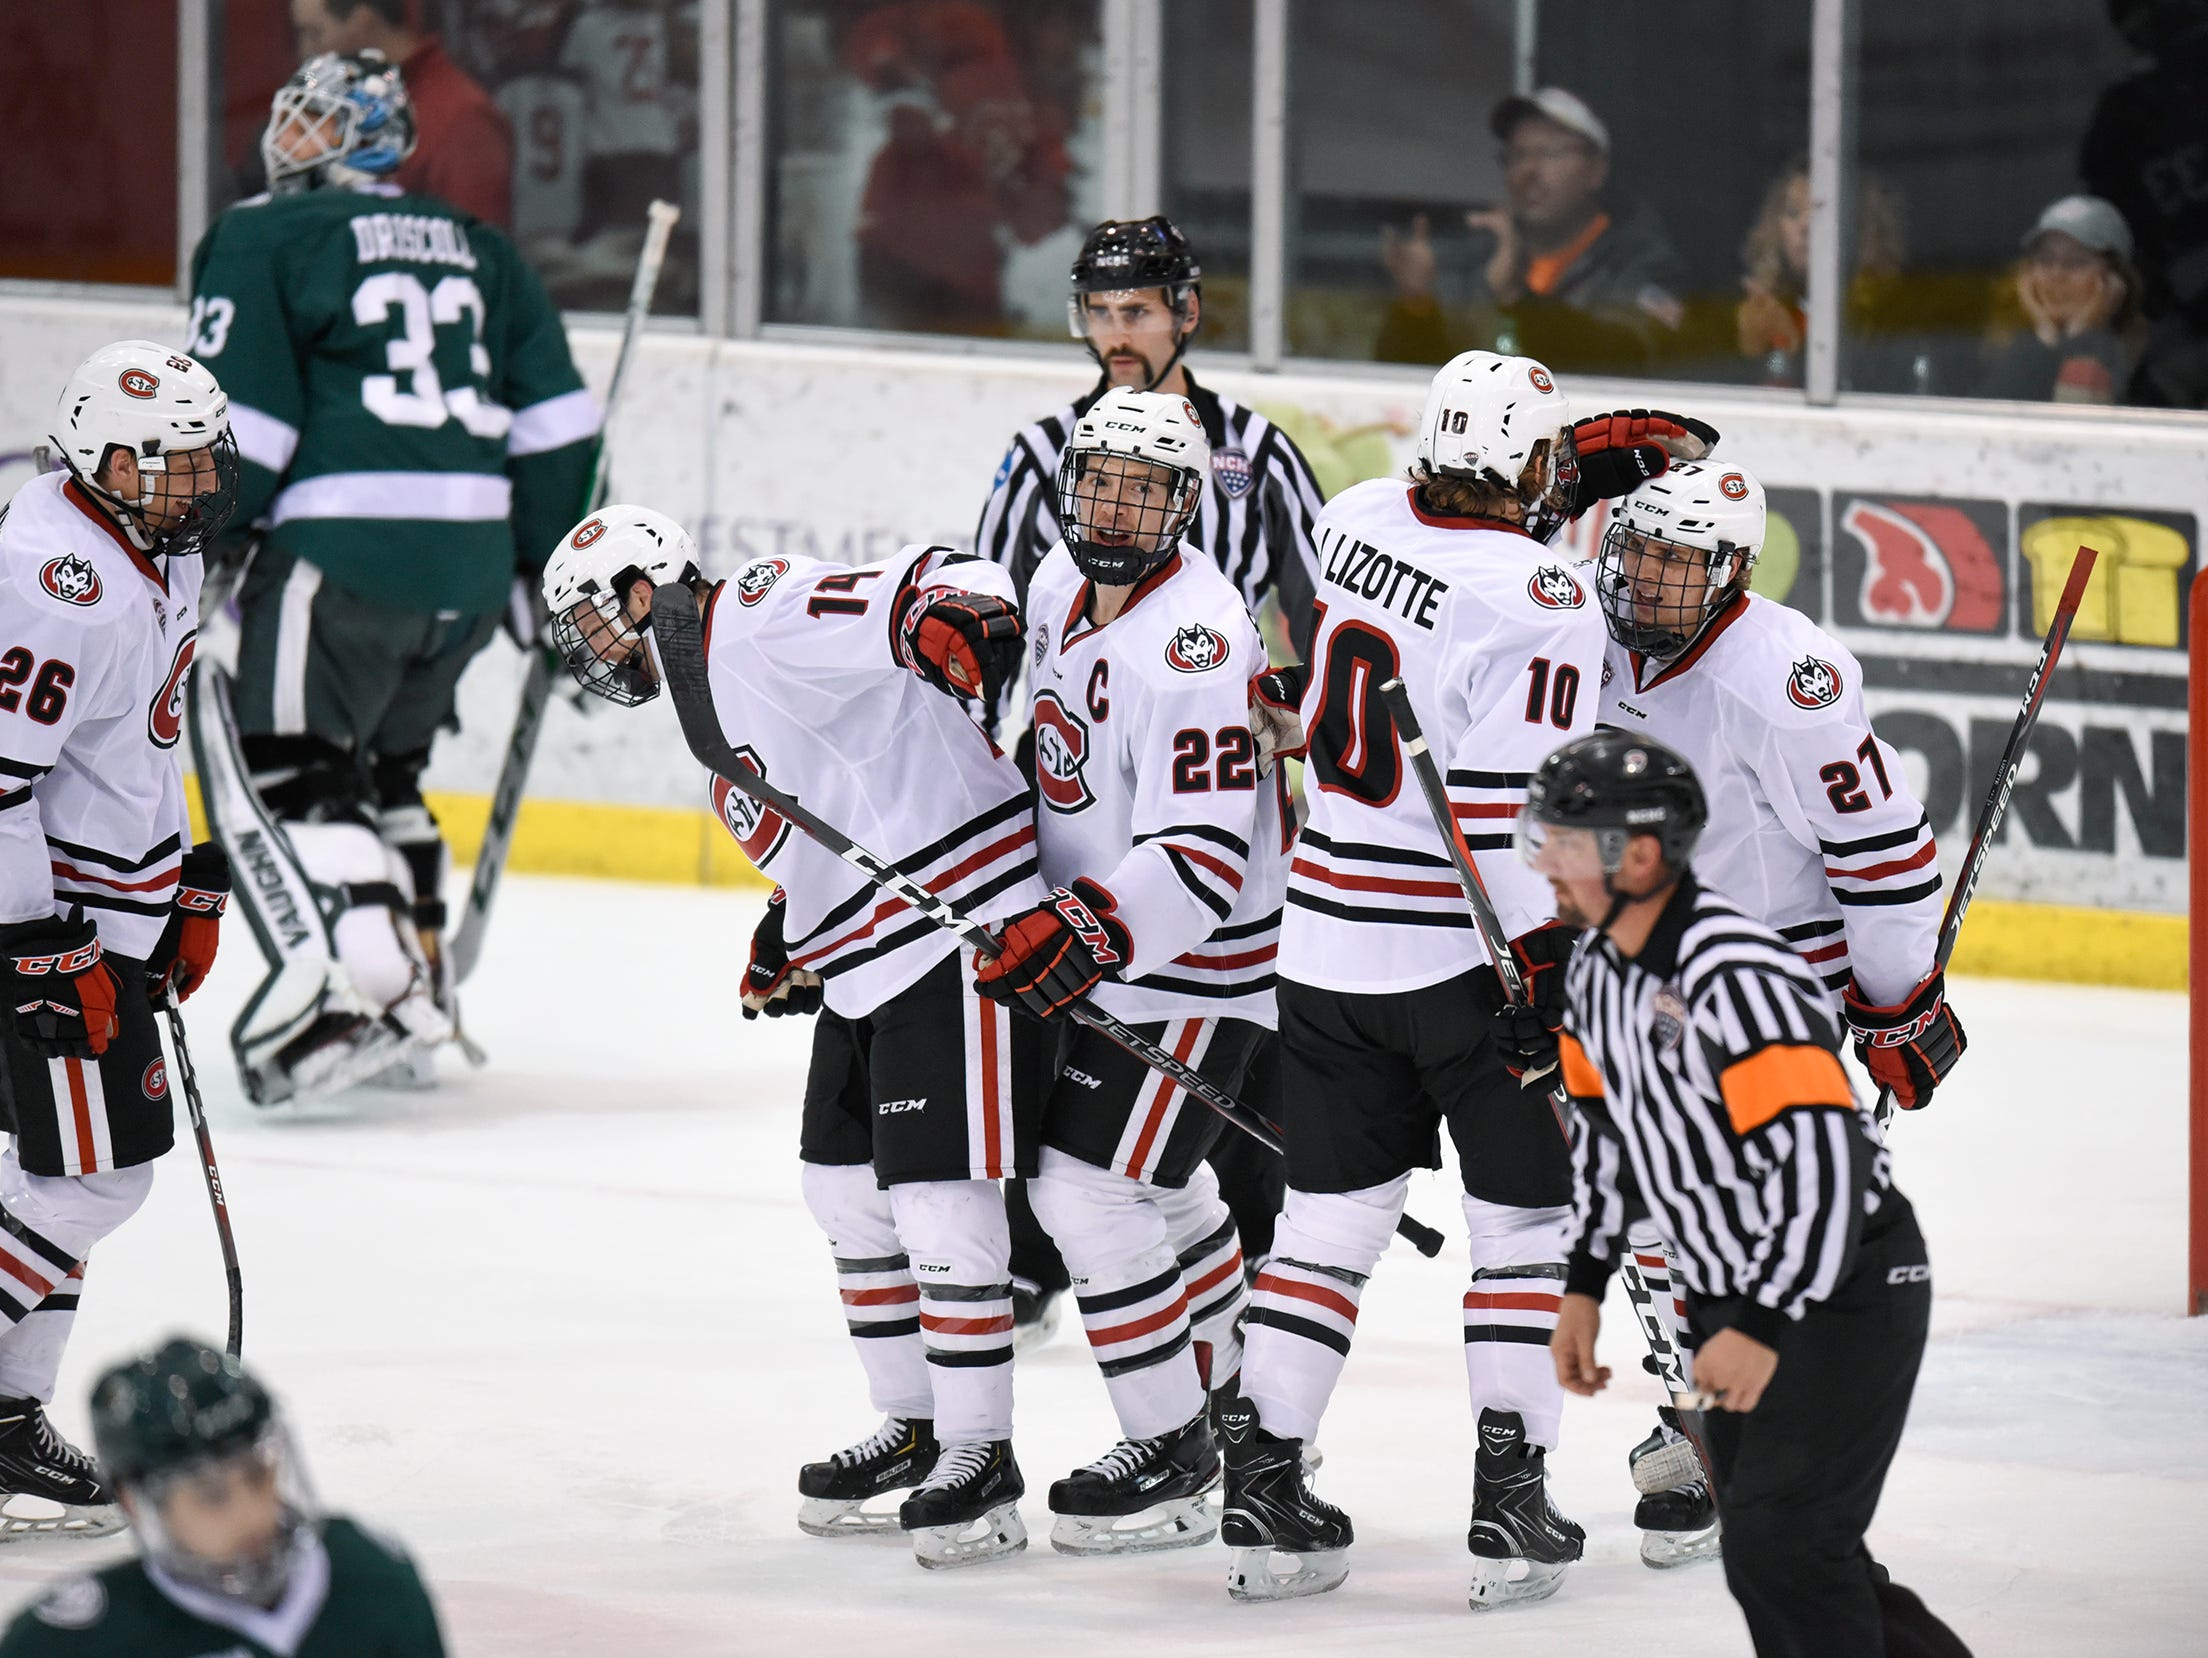 St. Cloud State players celebrate a goal during the first period of the Saturday, Nov. 17, game against Bemidji State at the Herb Brooks National Hockey Center in St. Cloud.